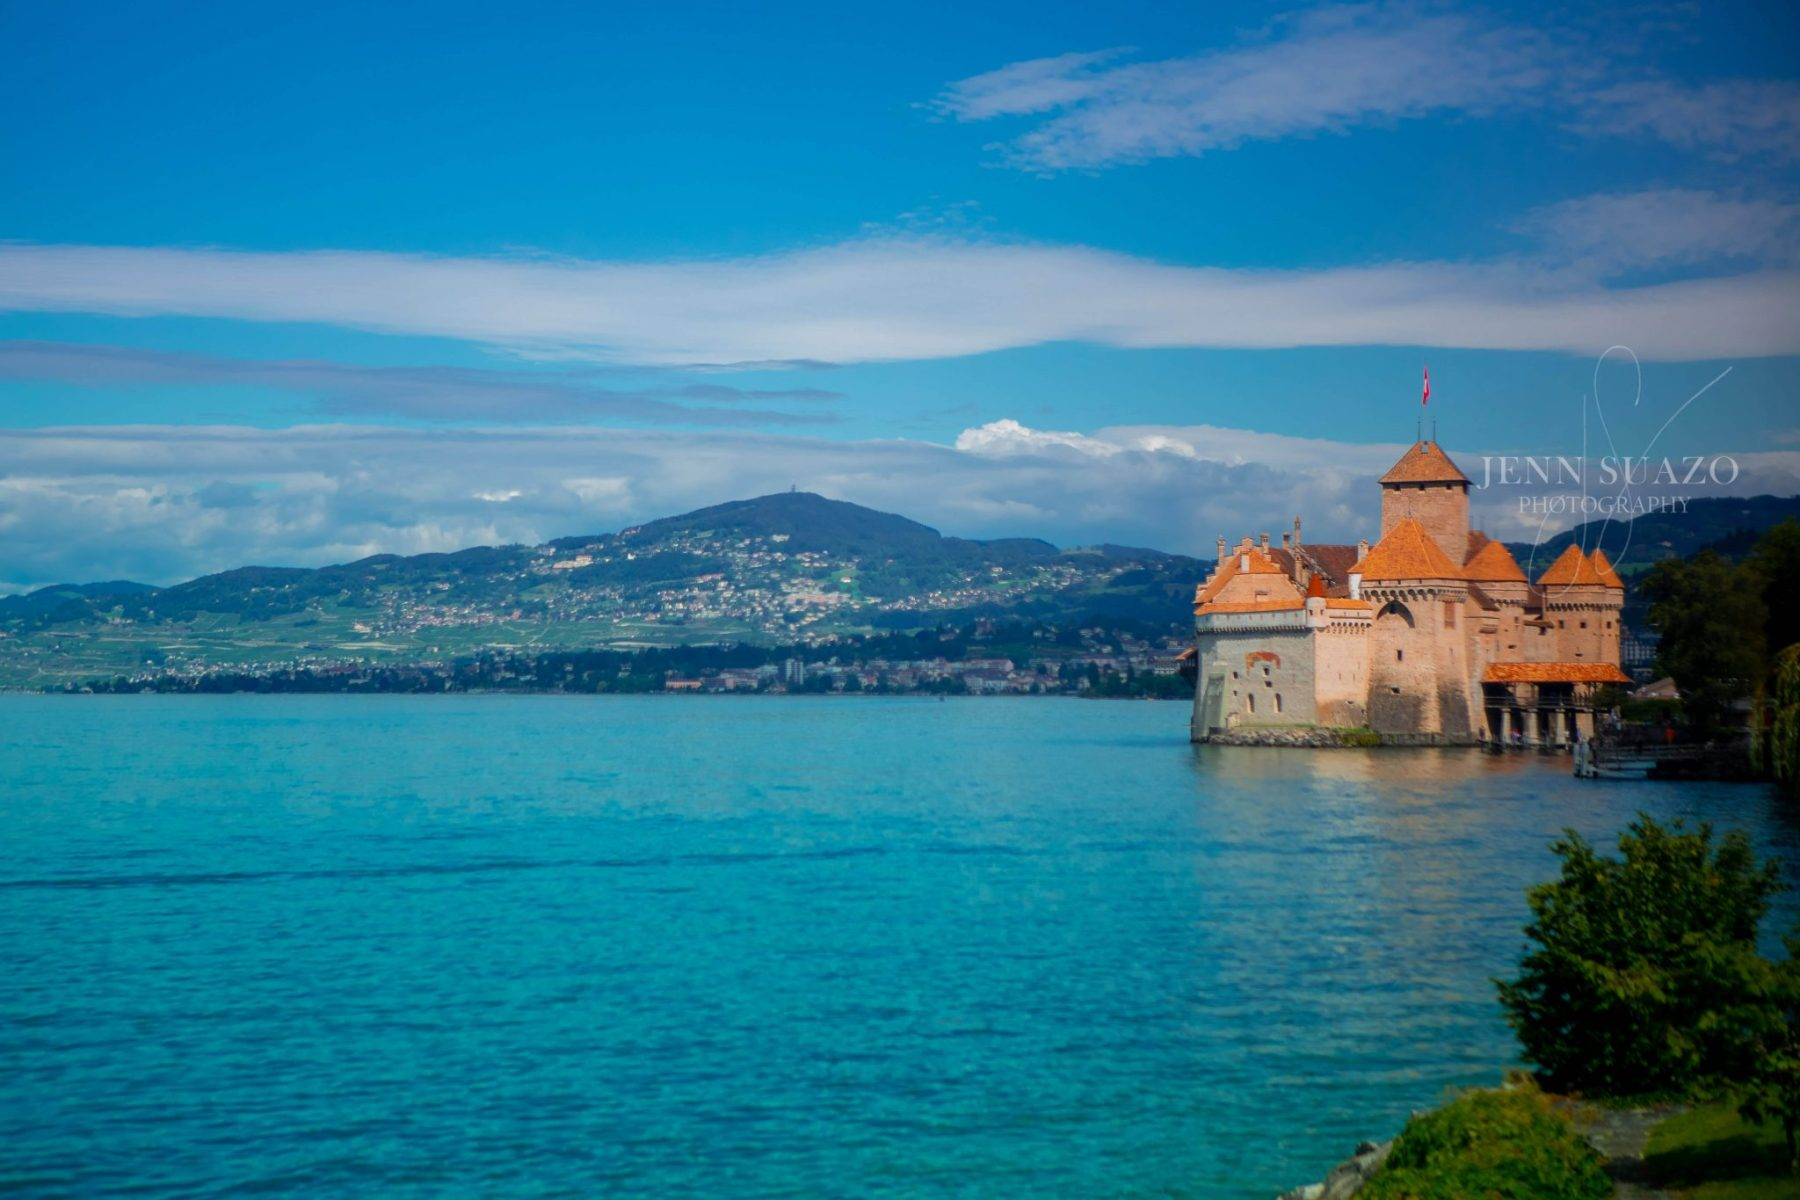 Castle Chilon on Lake Geneva with blue water and blue skies